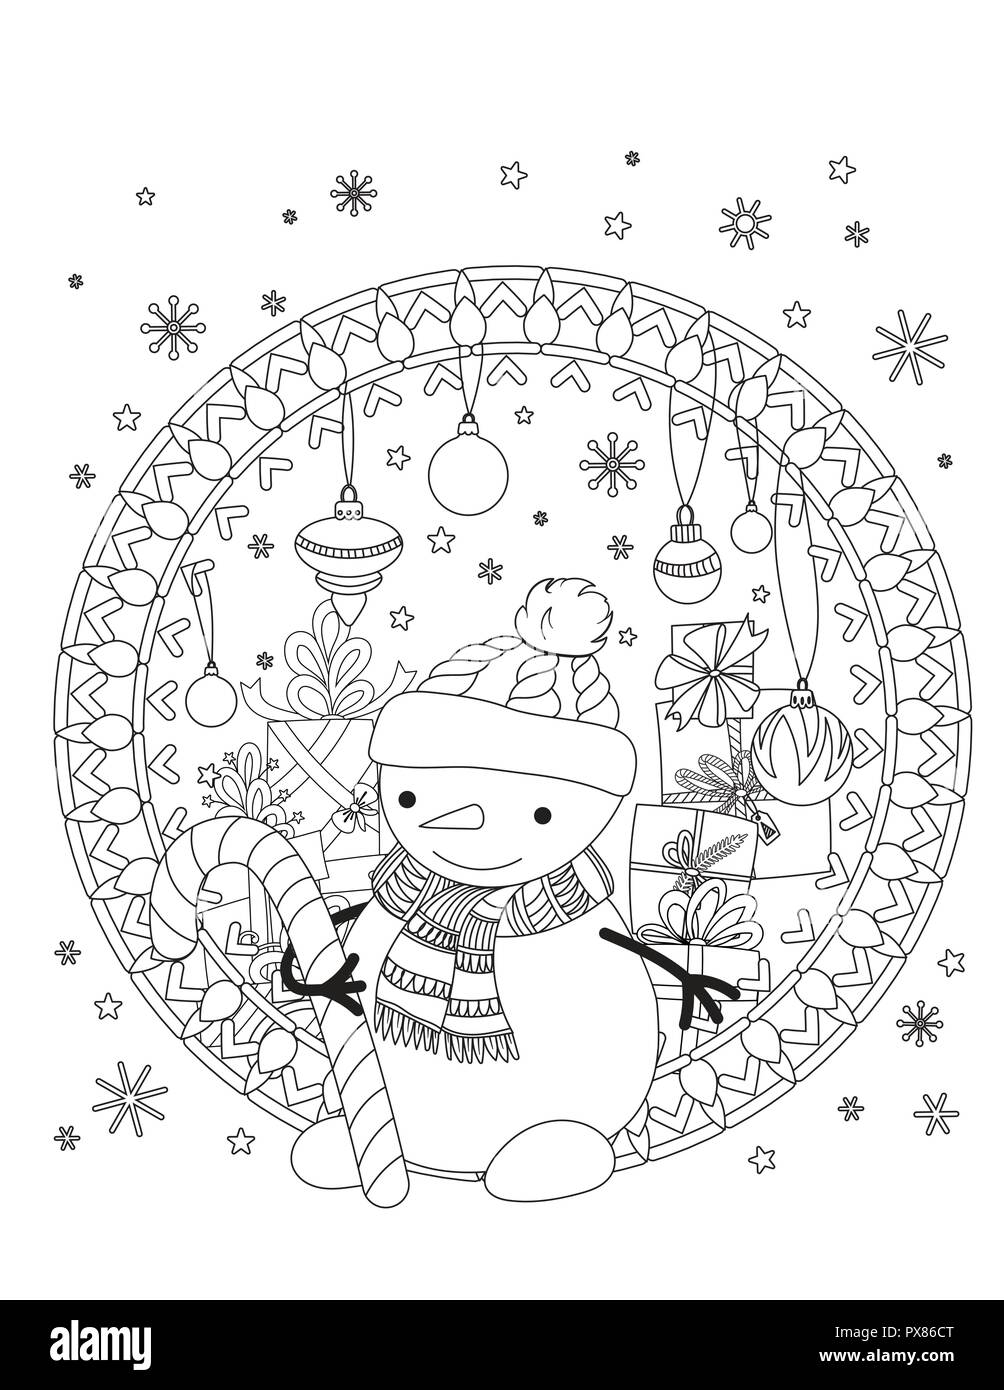 christmas coloring page adult coloring book cute snowman with scarf and knitted cap holiday decoration and pile of presents hand drawn outline vector